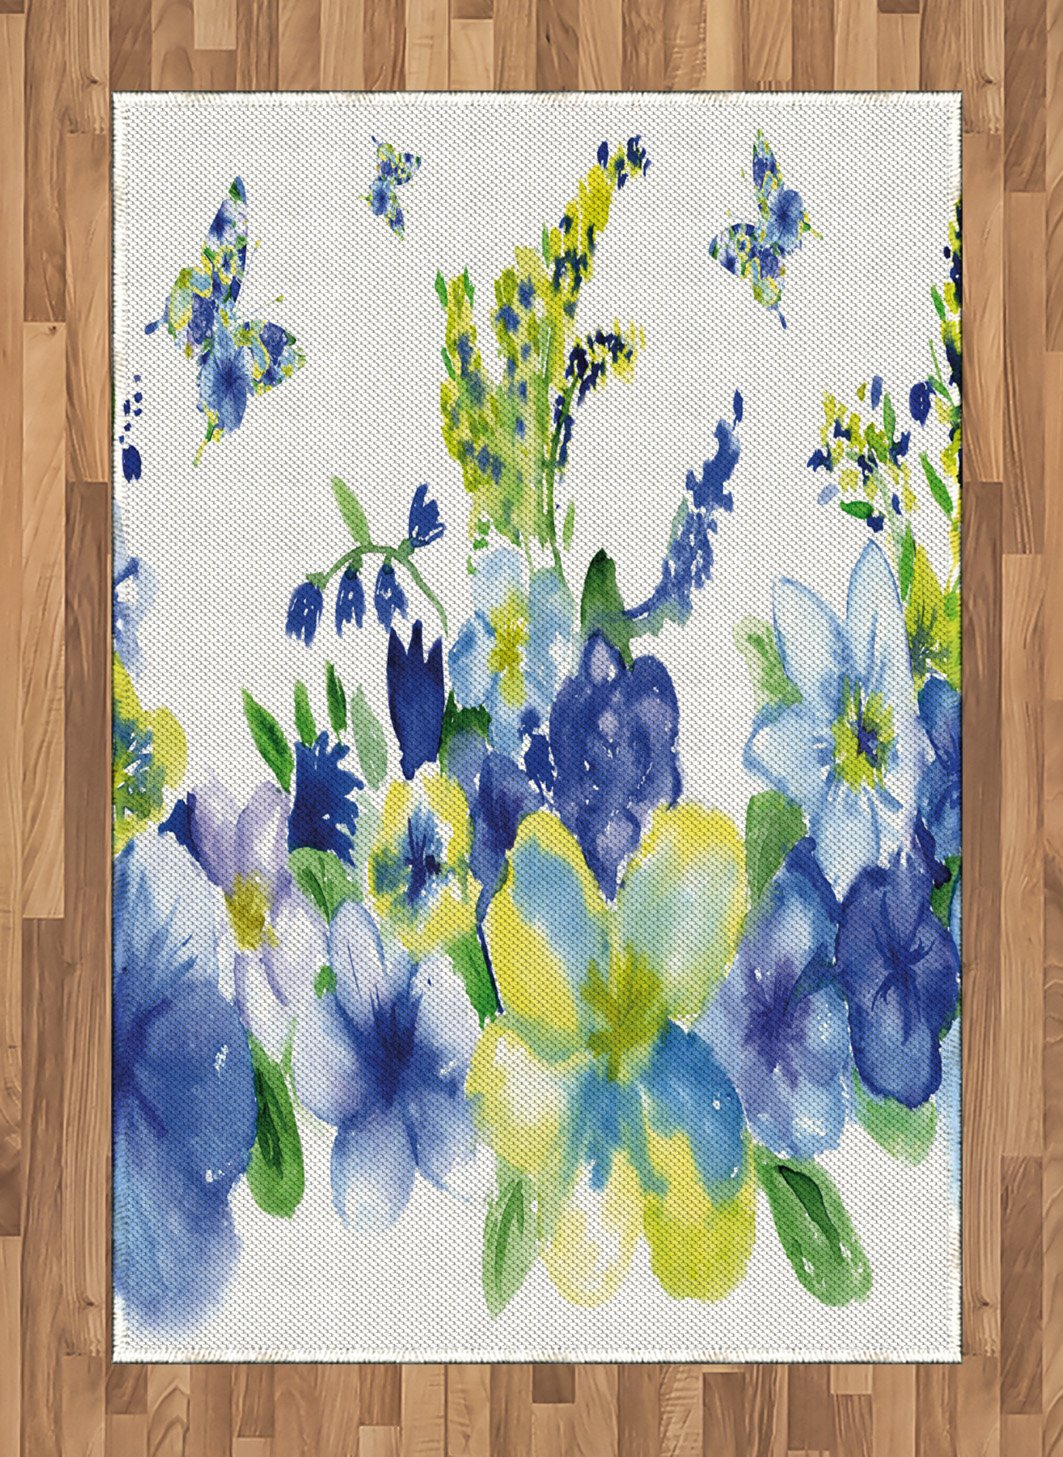 Ambesonne Yellow and Blue Area Rug, Spring Flower Watercolor Flourishing Vibrant Blooms Design, Flat Woven Accent Rug for Living Room Bedroom Dining Room, 4' X 5.7', Royal Blue by Ambesonne